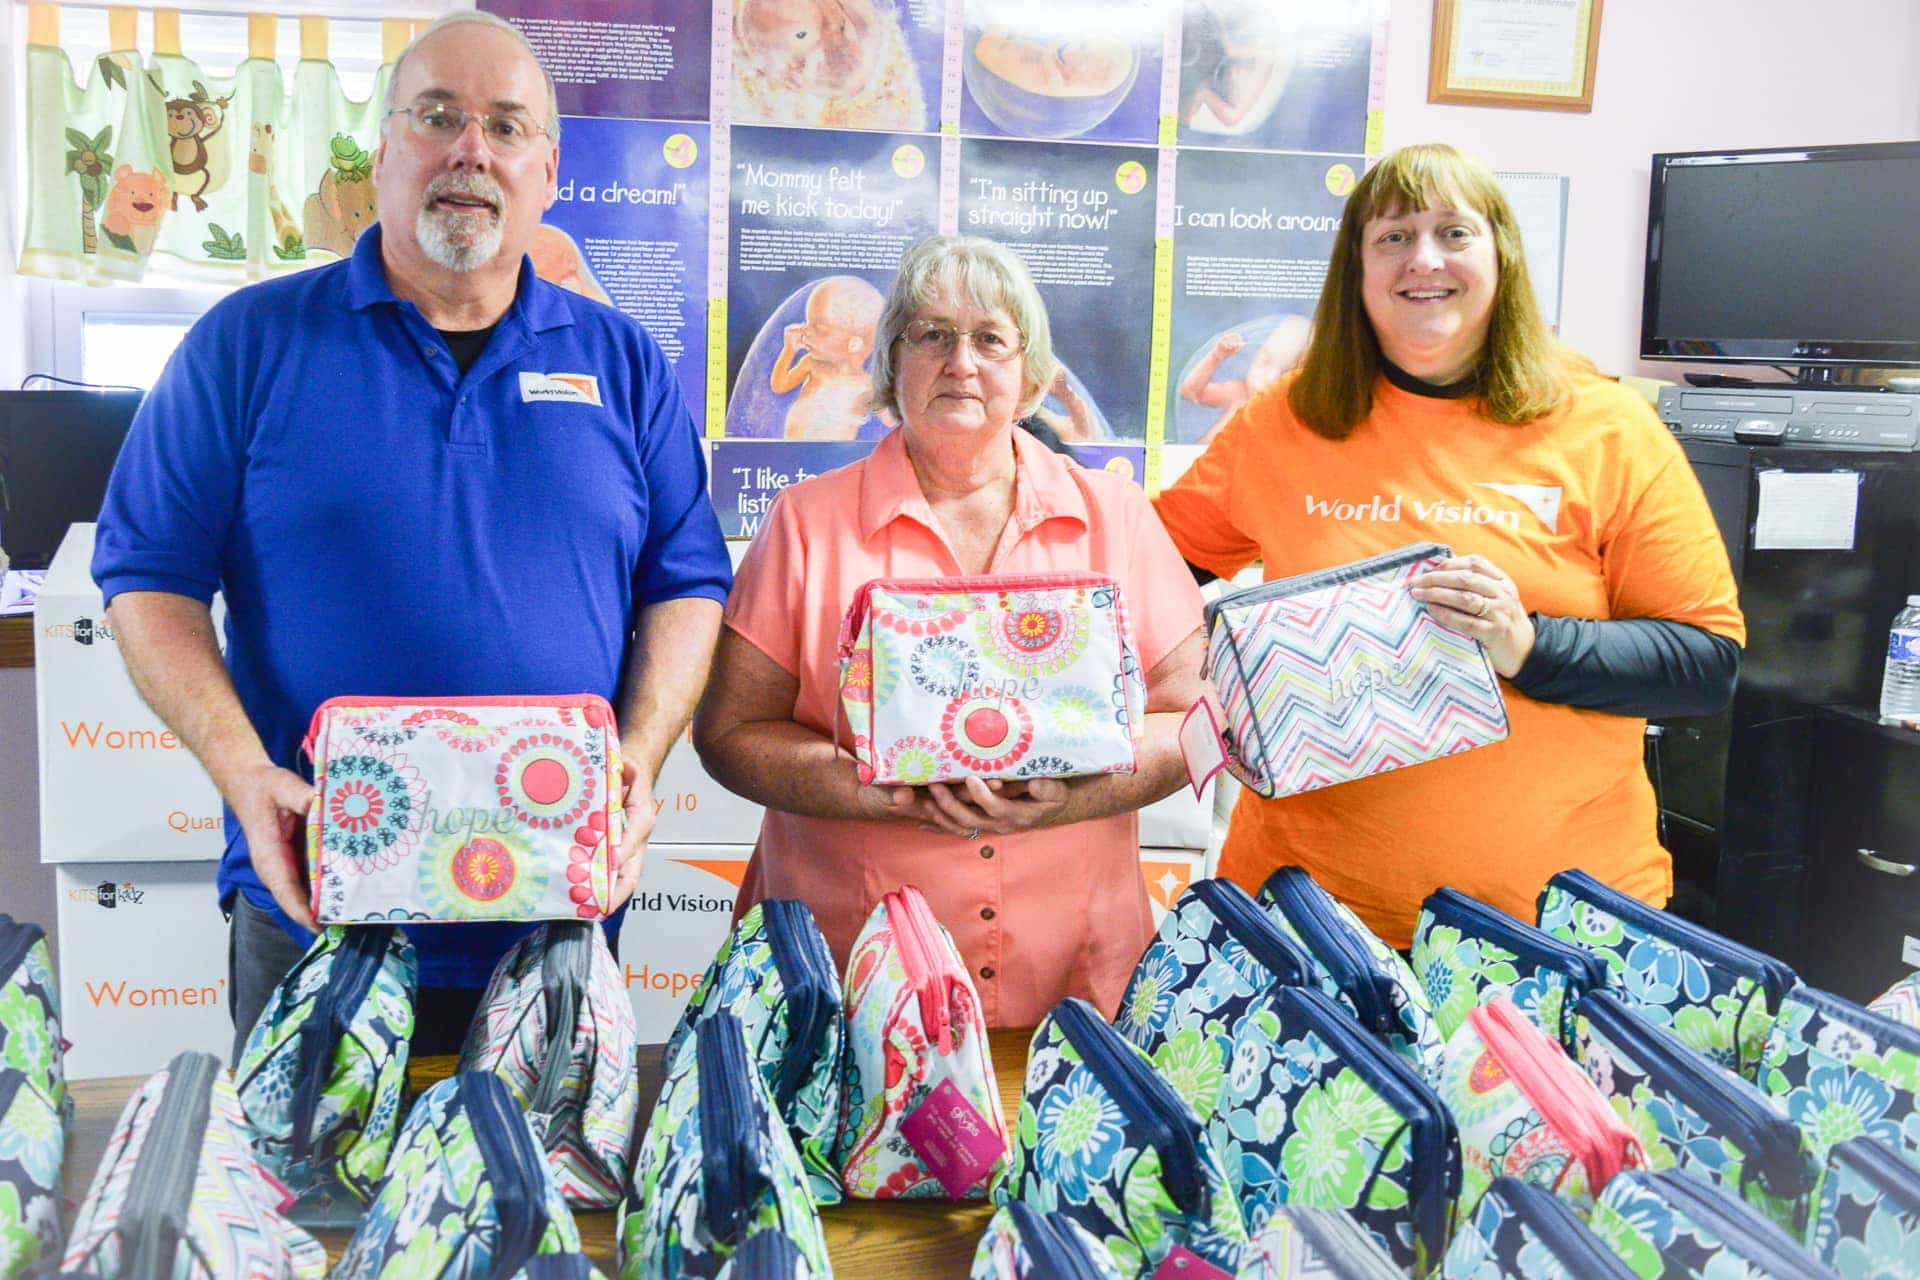 Central W.Va. Center for Pregnancy Care supplies 'Bags of Hope' to mothers in transition